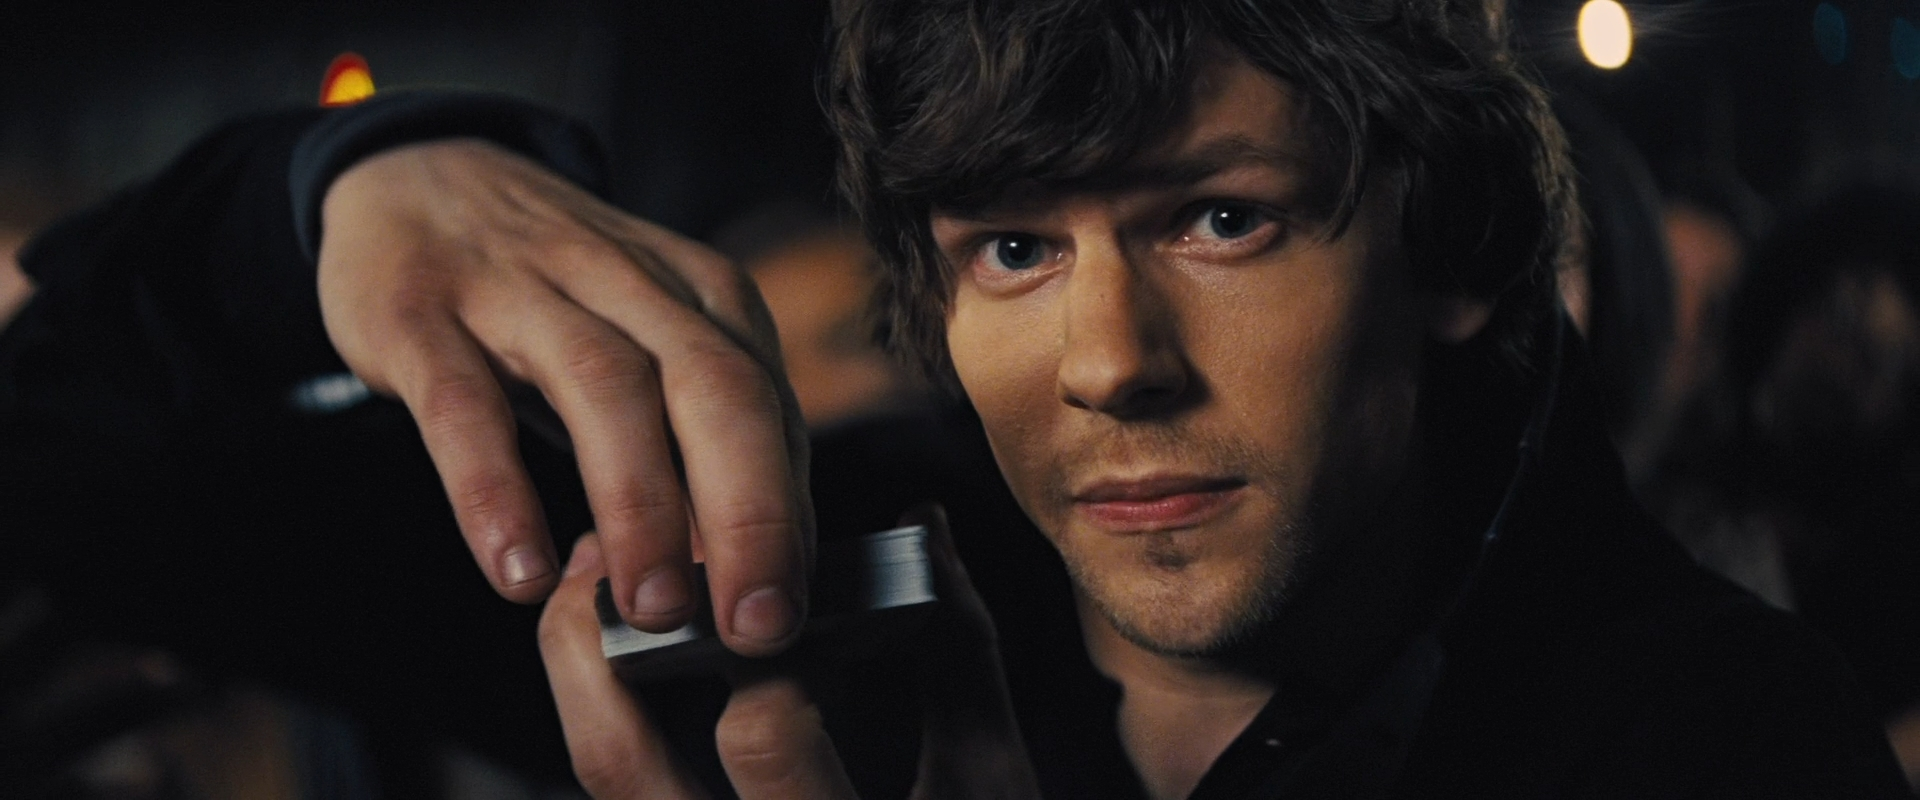 now you see me 2013 english subtitles download